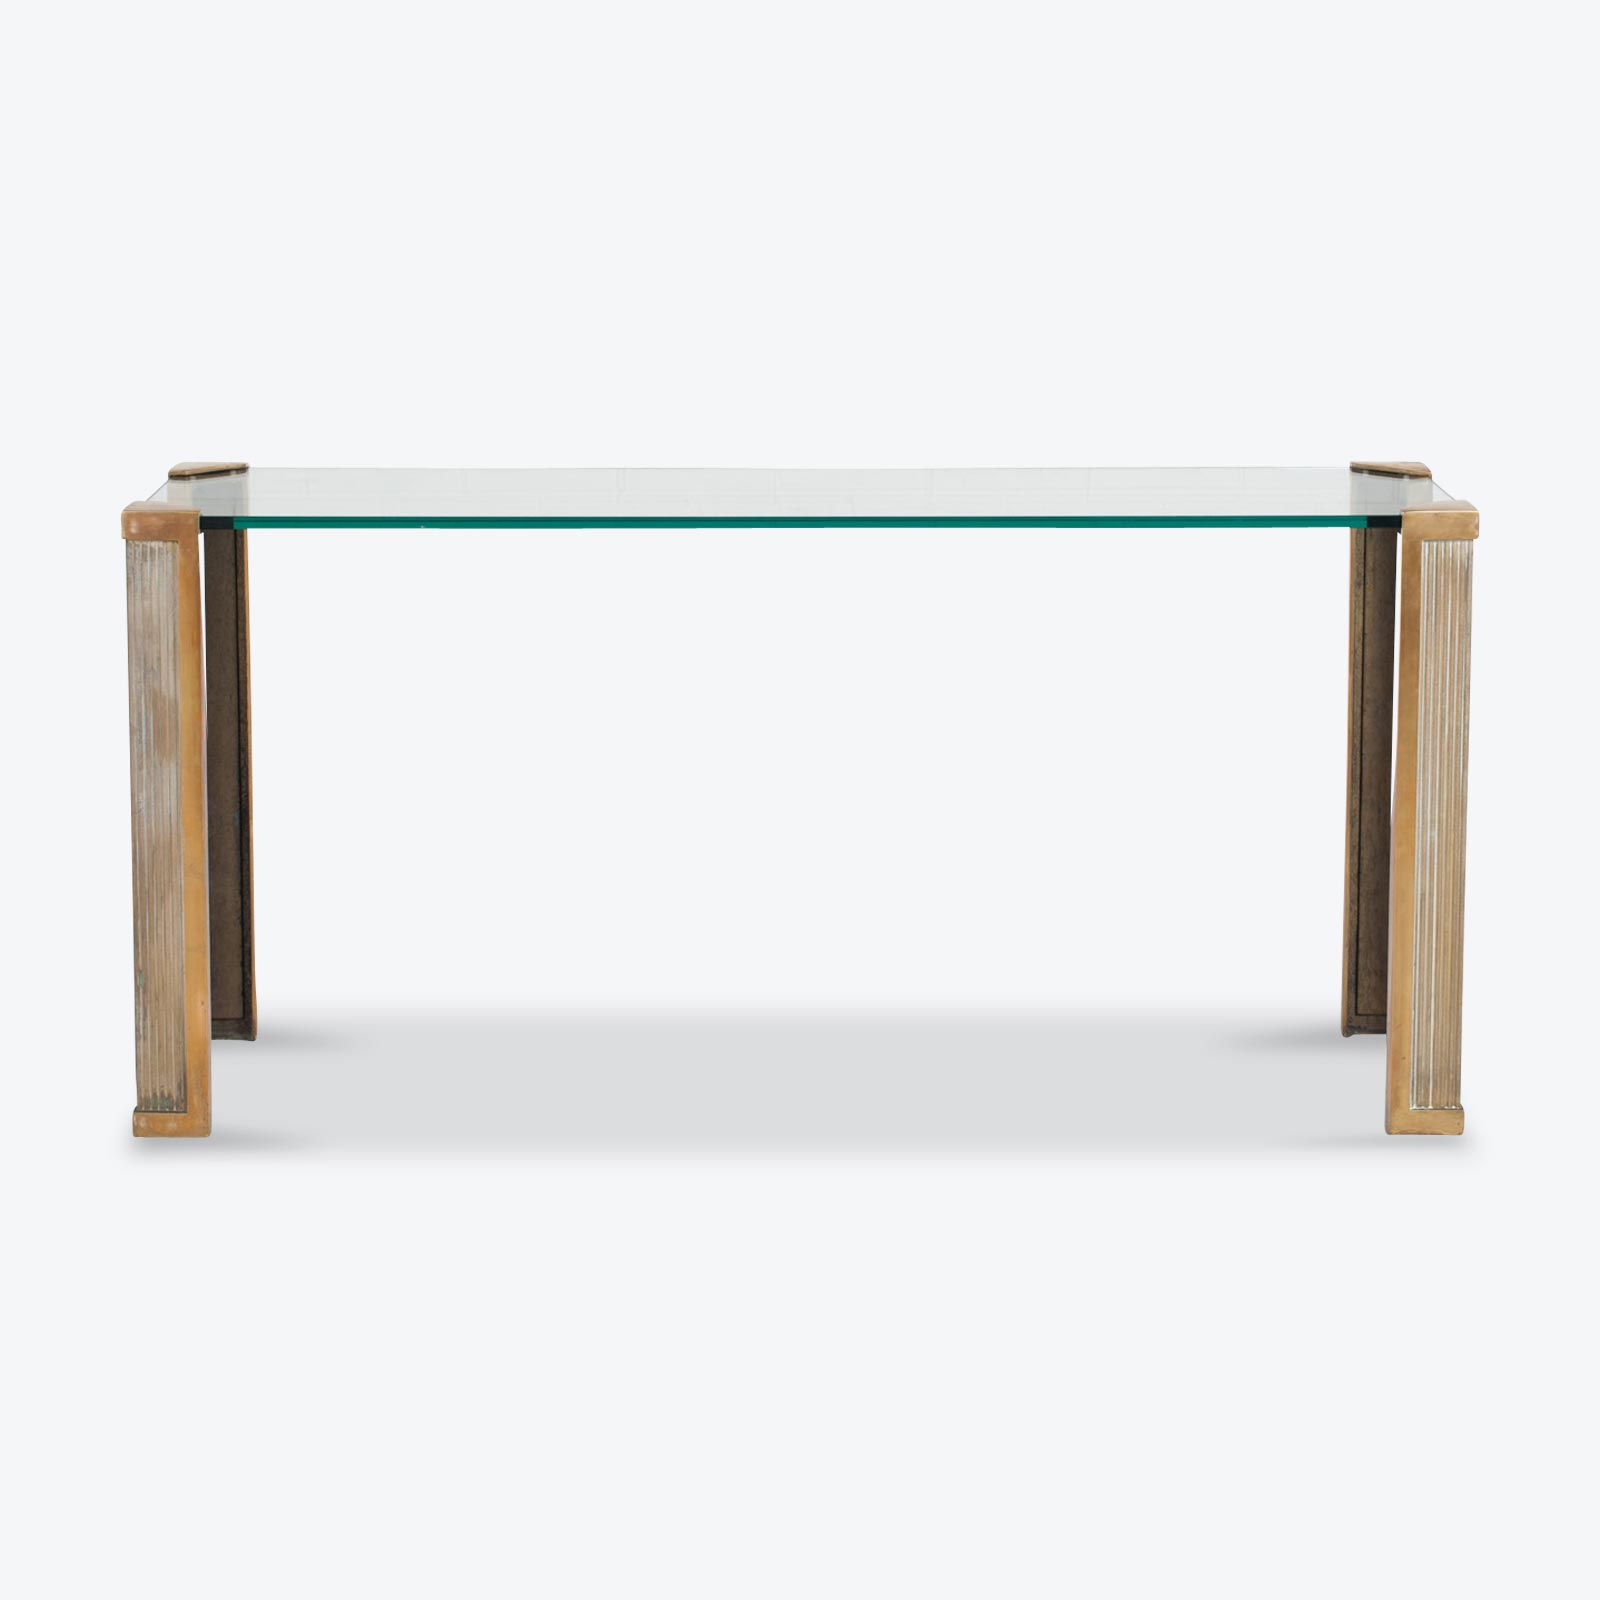 Console By Peter Ghyczy In Brass And Glass 1970s Netherlands.jpg